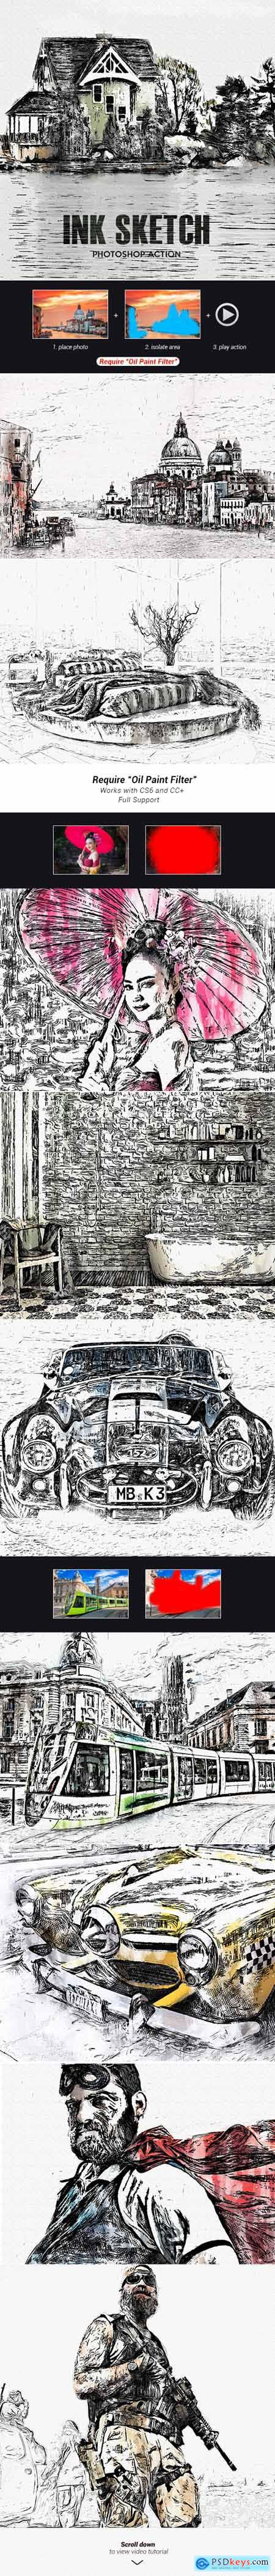 InkSketch - Photoshop Action 24747552